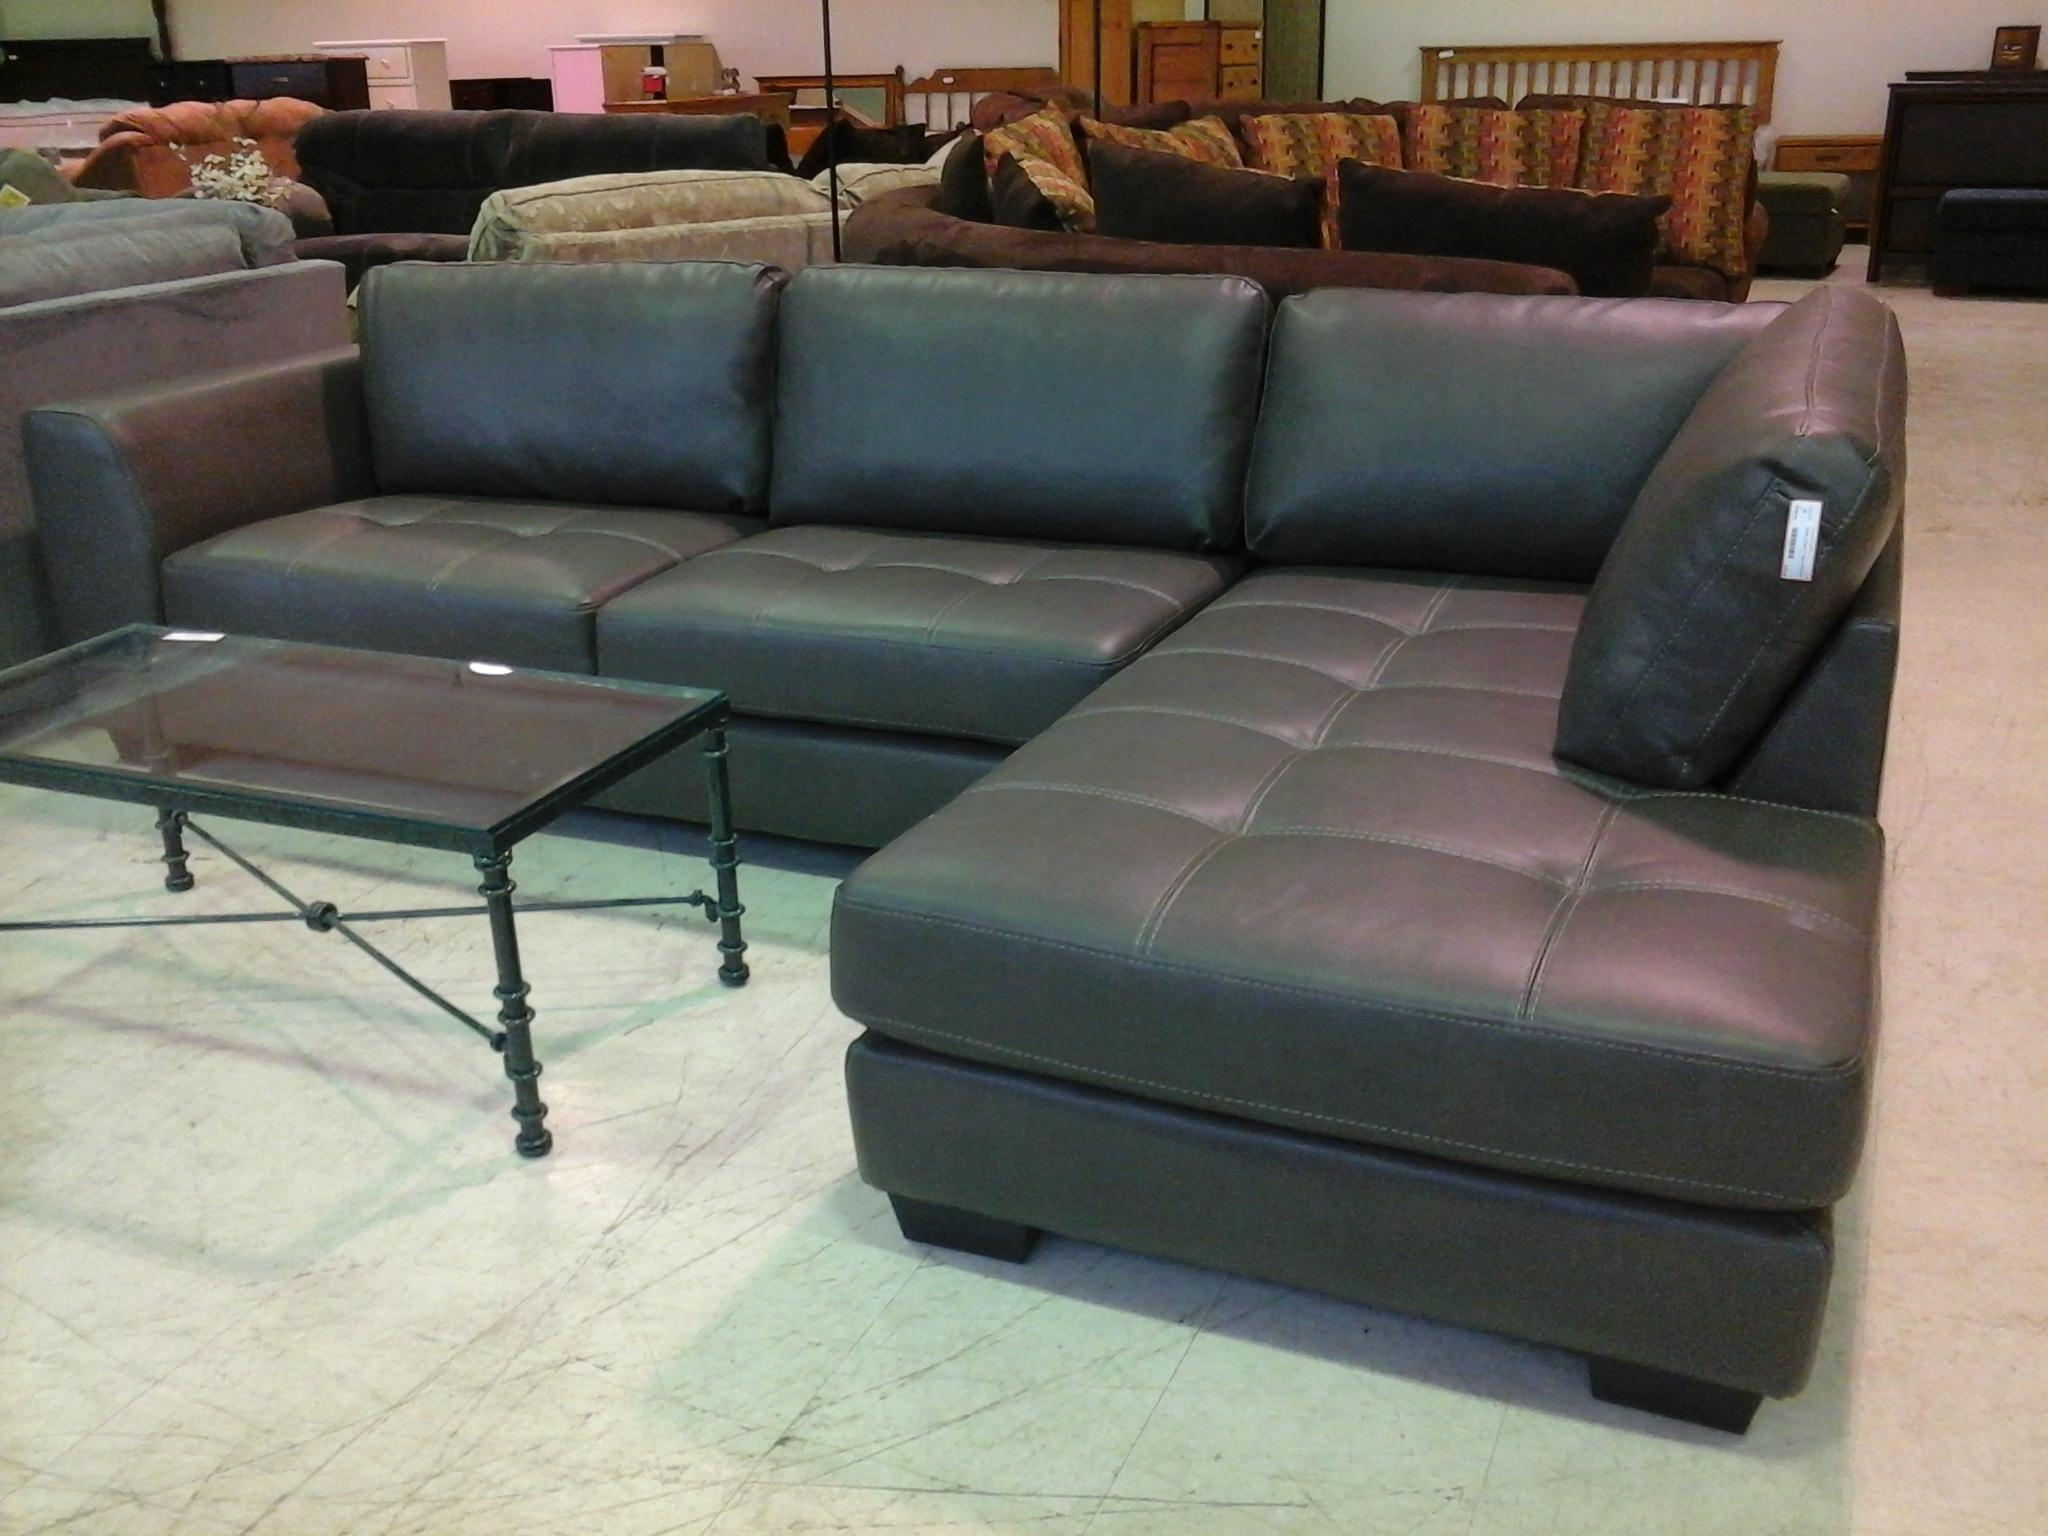 Small Leather Sectional Sofa With Chaise | Tehranmix Decoration Regarding Small Scale Leather Sectional Sofas (Image 9 of 20)